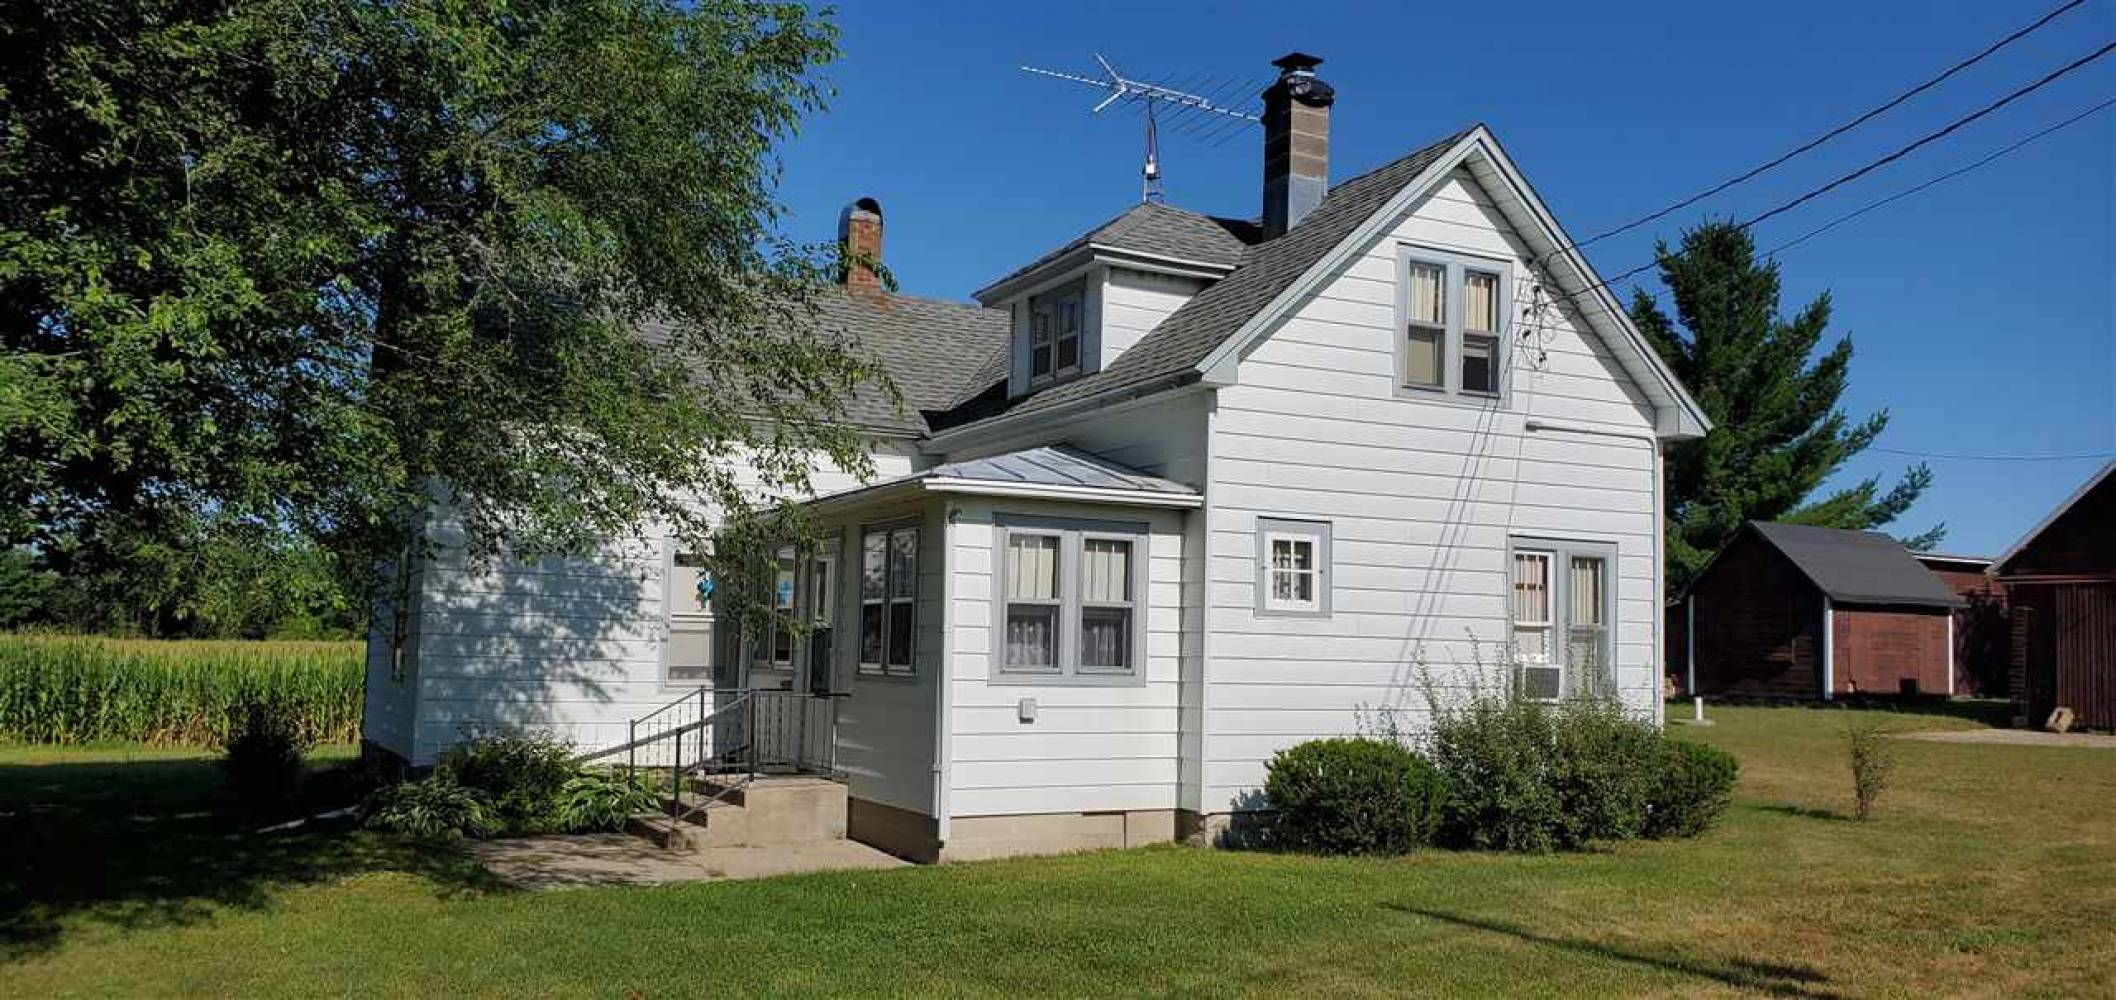 W2533 Eagle Rd, Shields, Wisconsin 54960, 3 Bedrooms Bedrooms, ,1 BathroomBathrooms,Single Family,For Sale,Eagle Rd,1890041